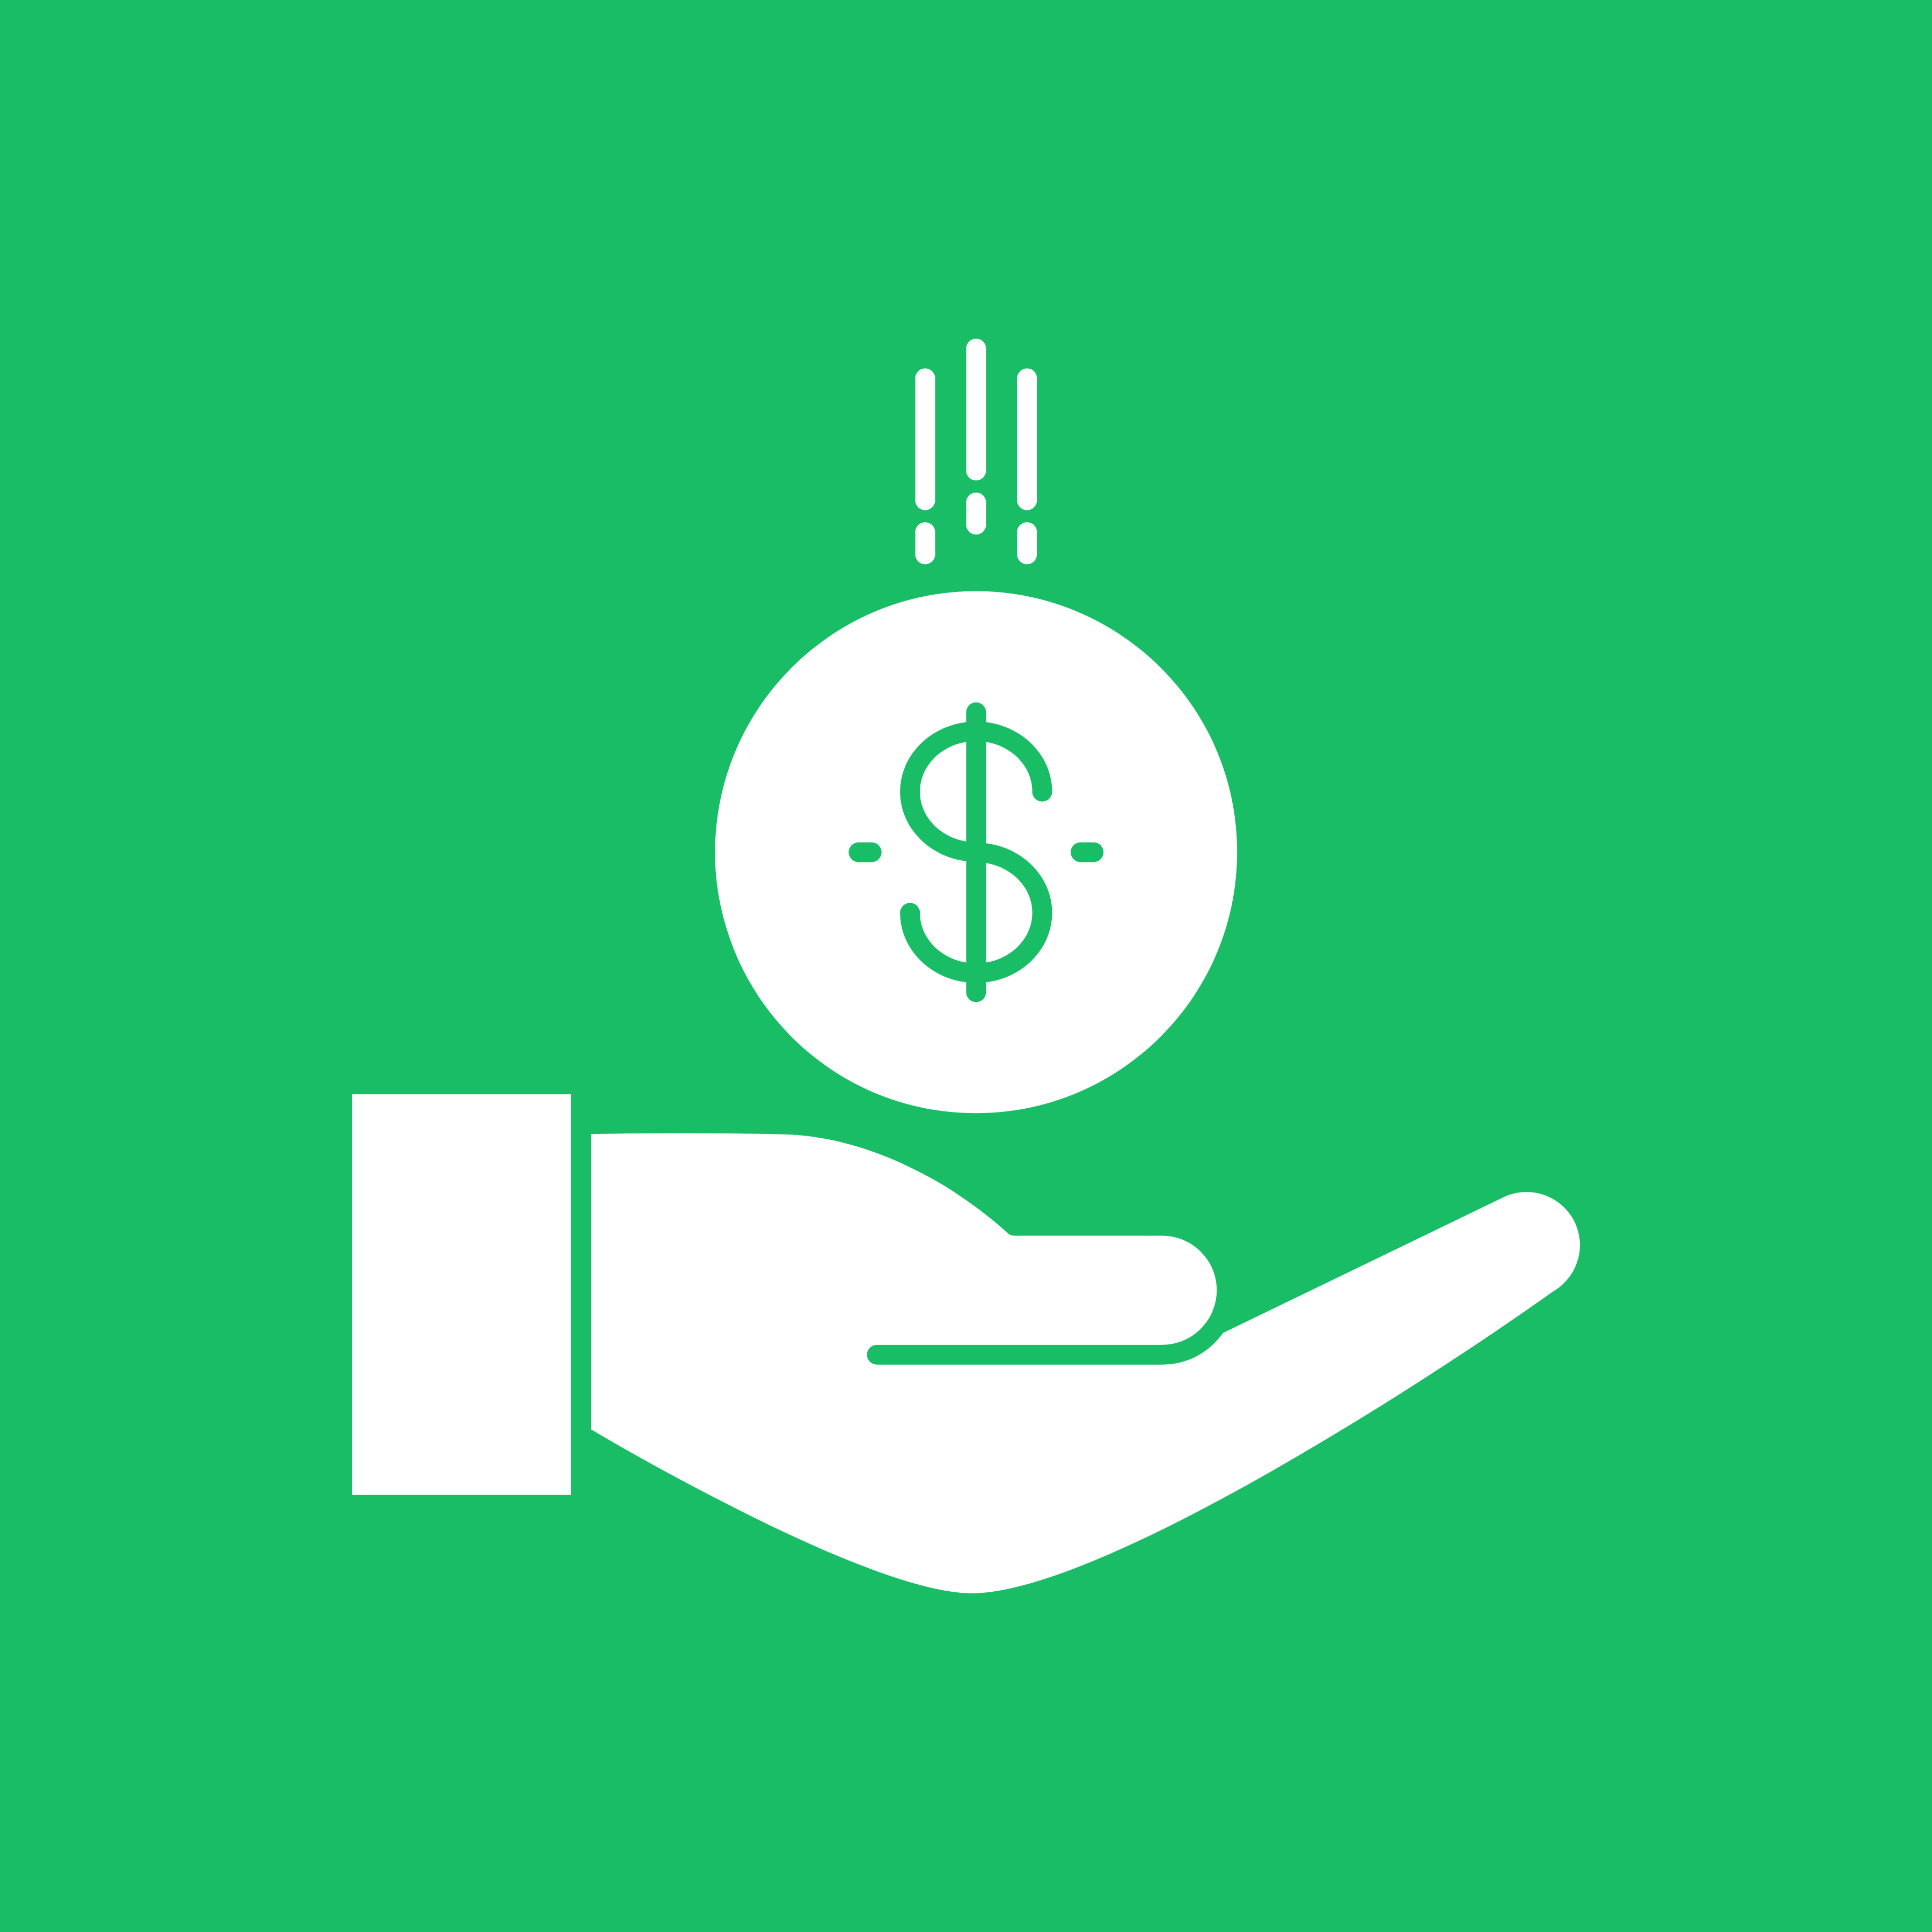 A green and white financial assistance symbol